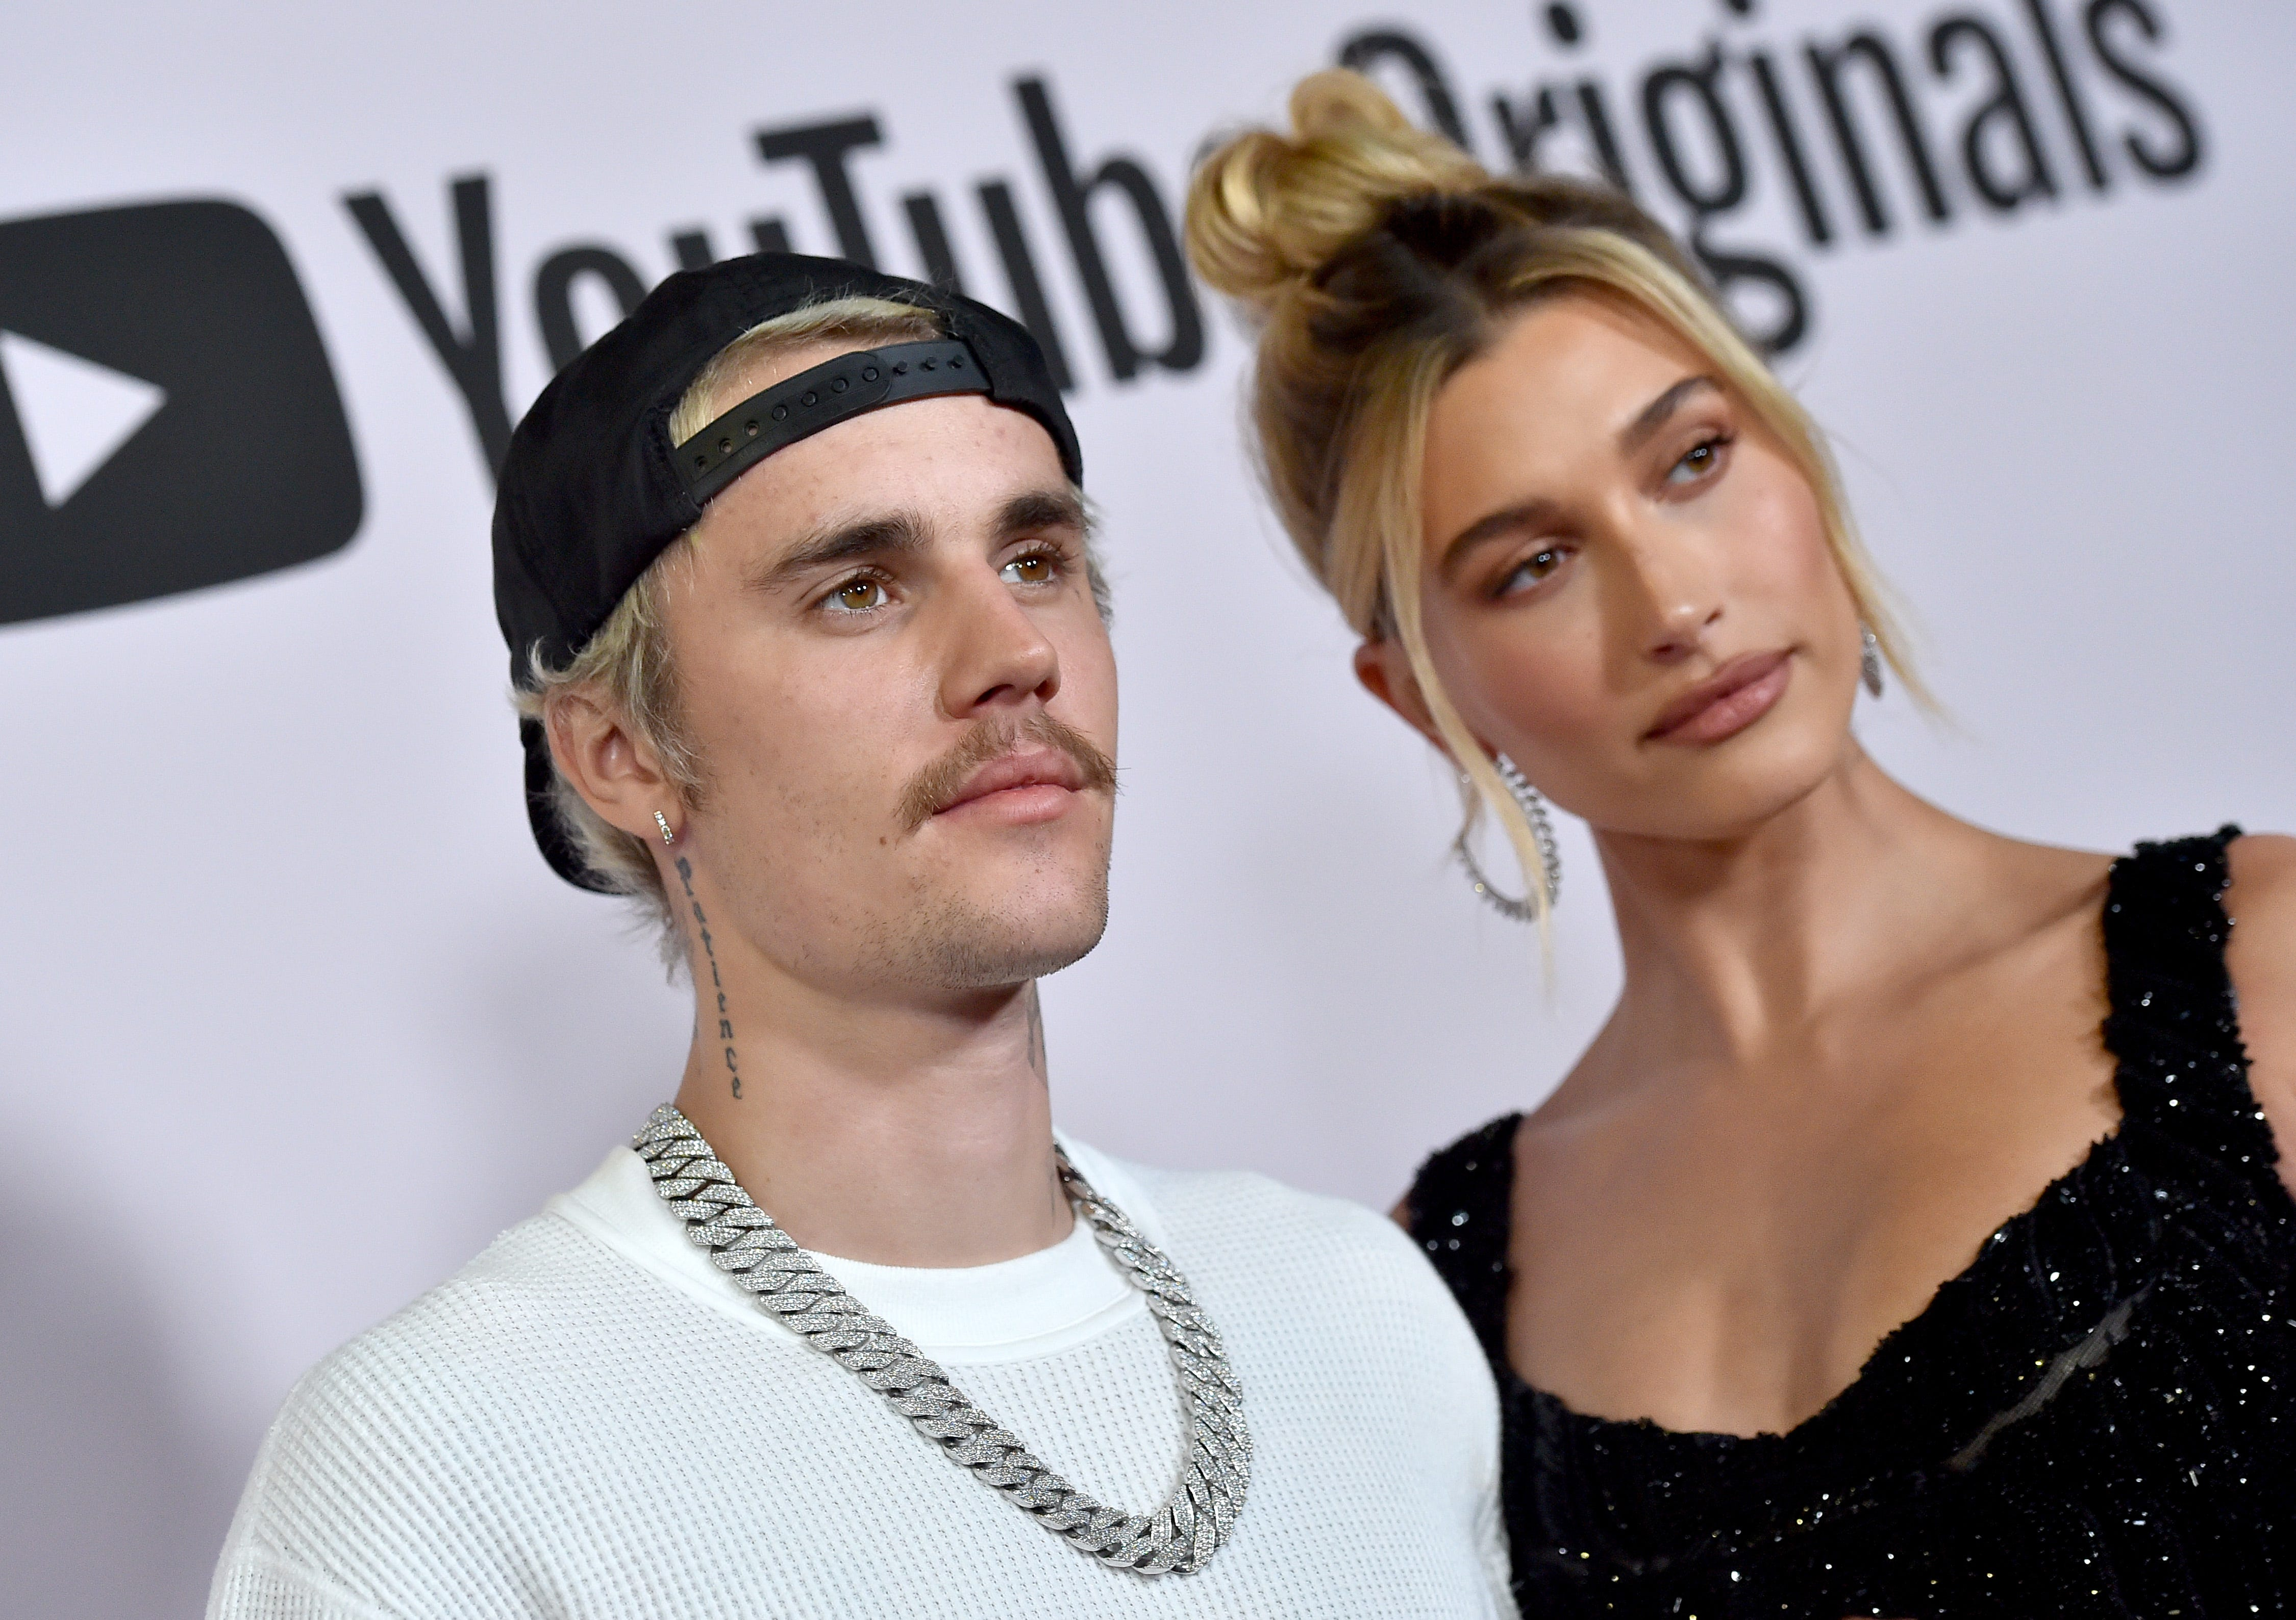 Bieber dating is now who Justin Bieber